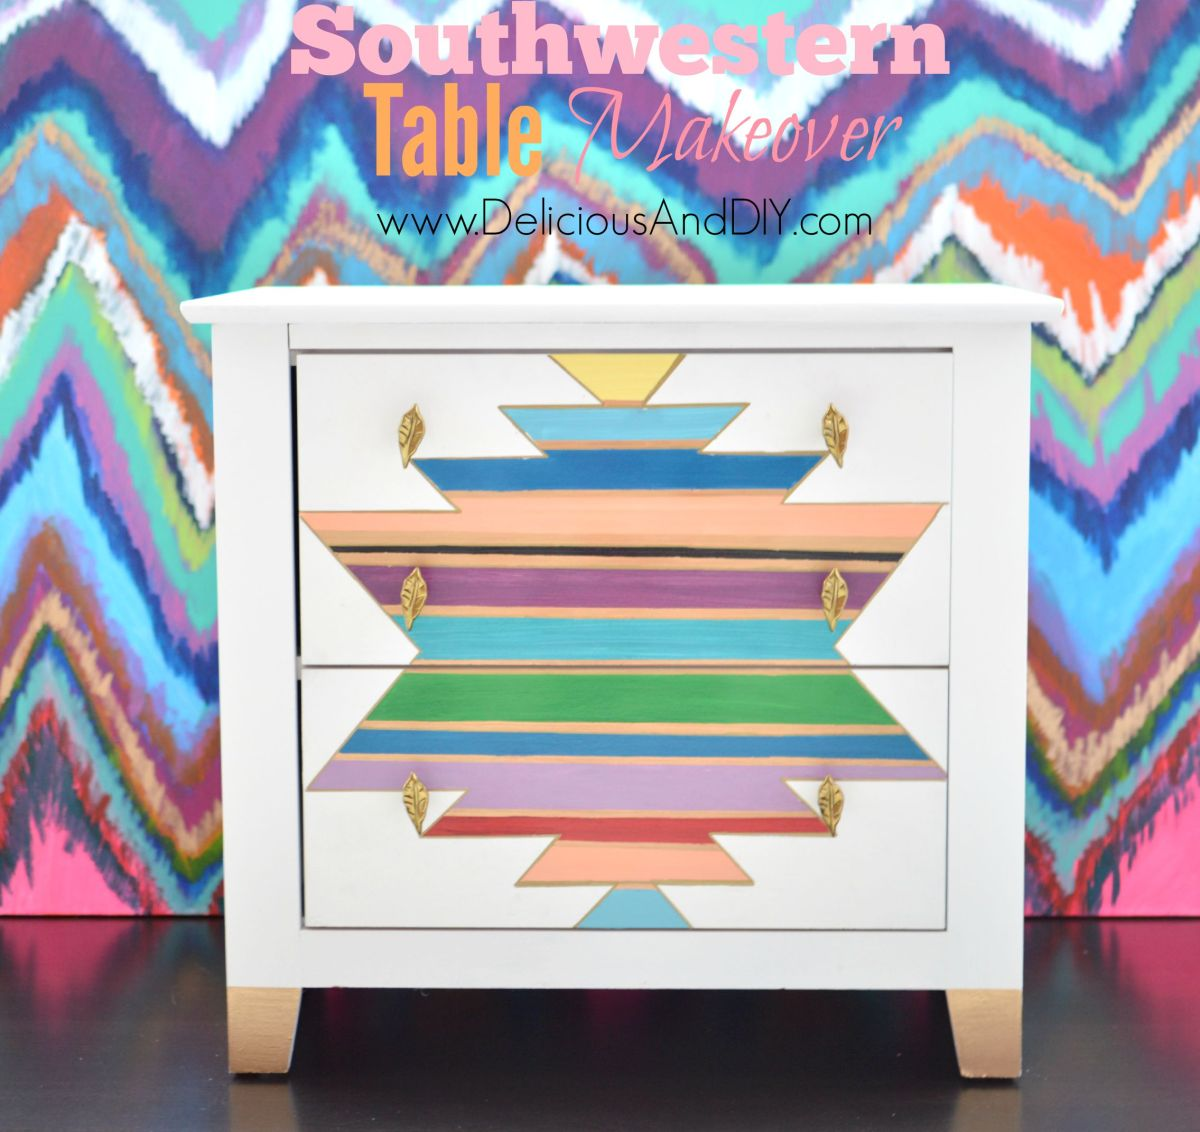 Southwestern Table Makeover